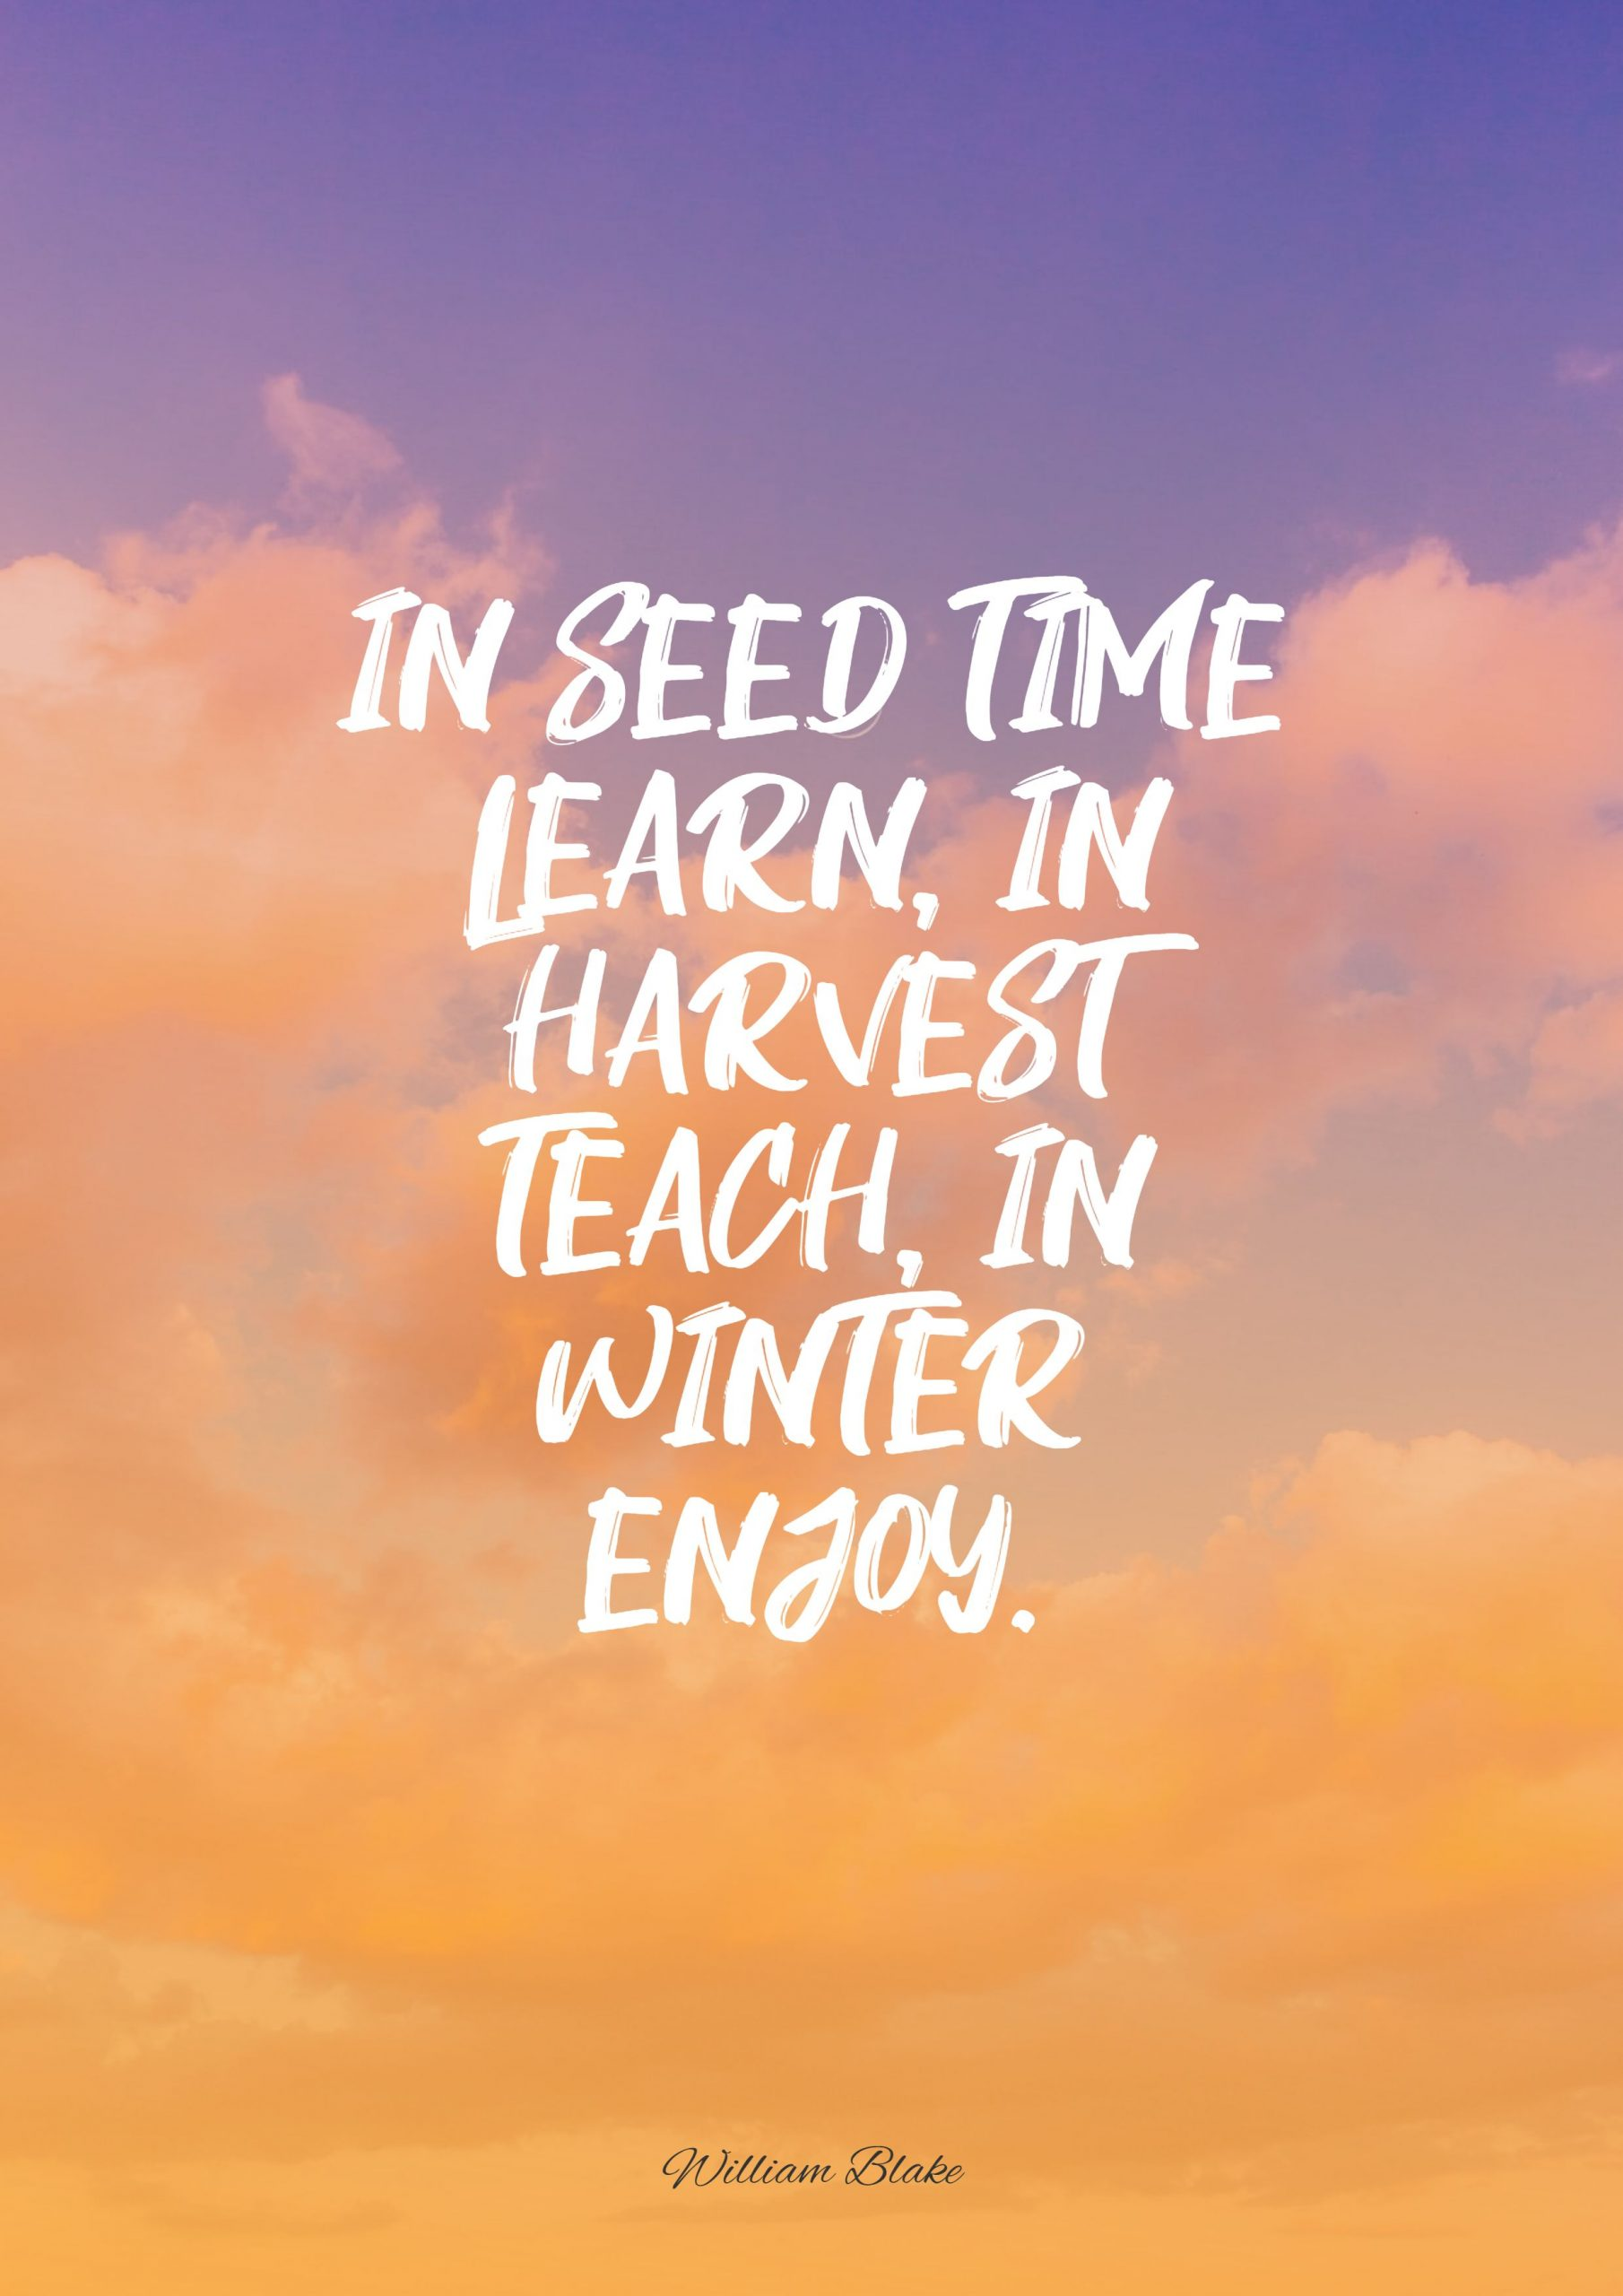 Quotes image of In seed time learn, in harvest teach, in winter enjoy.